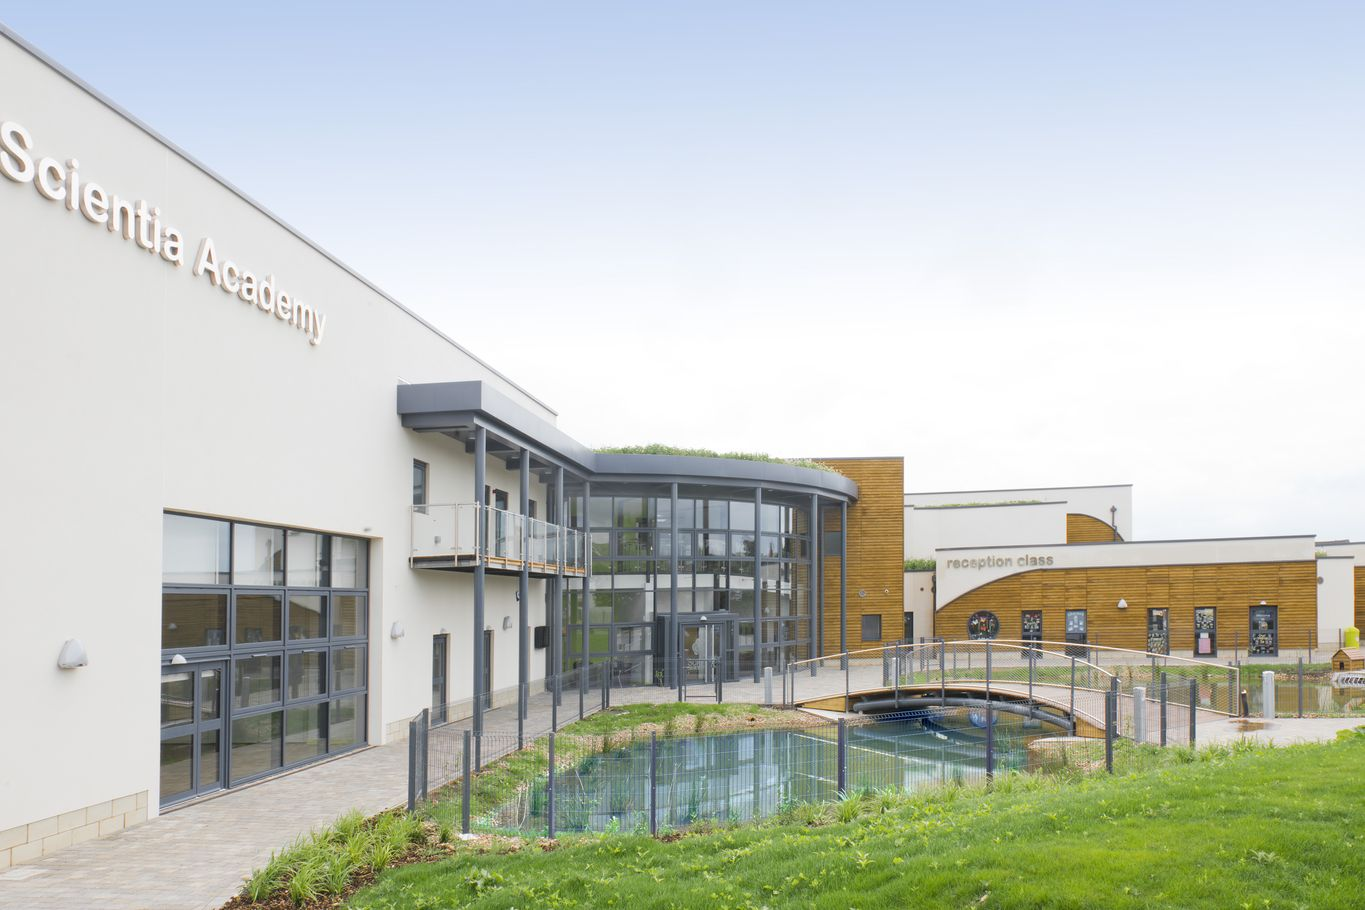 Scientia Academy, Staffordshire